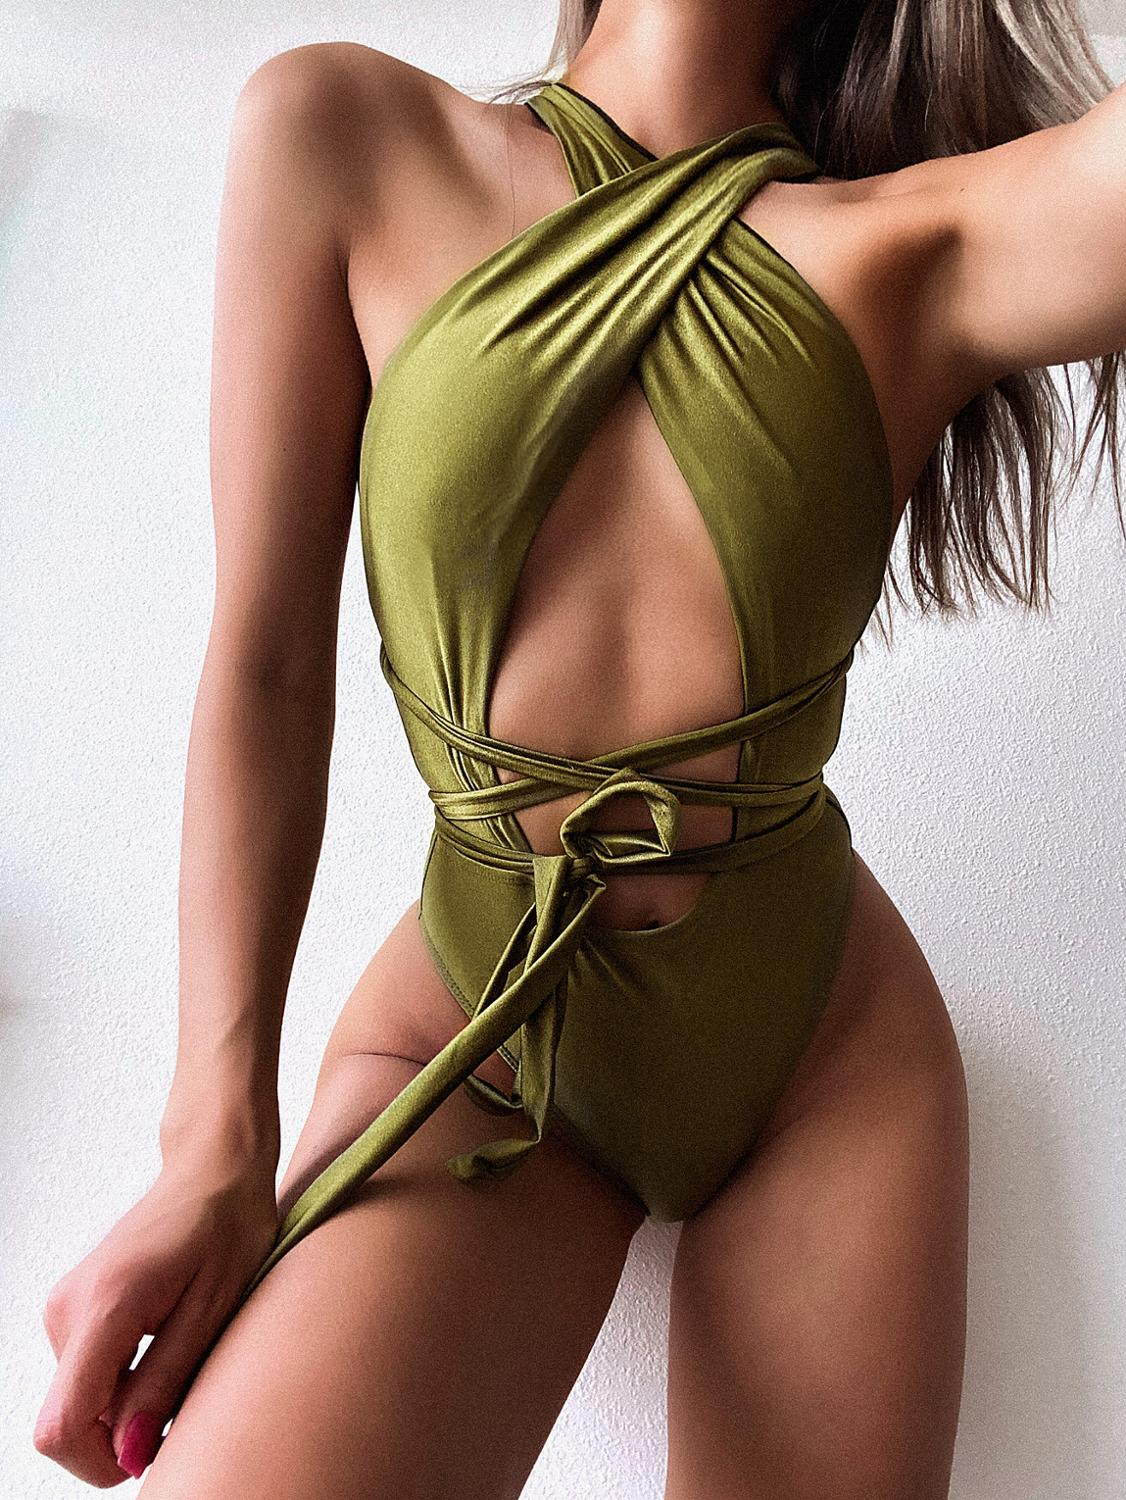 2020 New One Piece Swimsuit Sexy Bandage Swimwear Women Bathing Suit Beach Backless Monokini Swimsuit Female 1